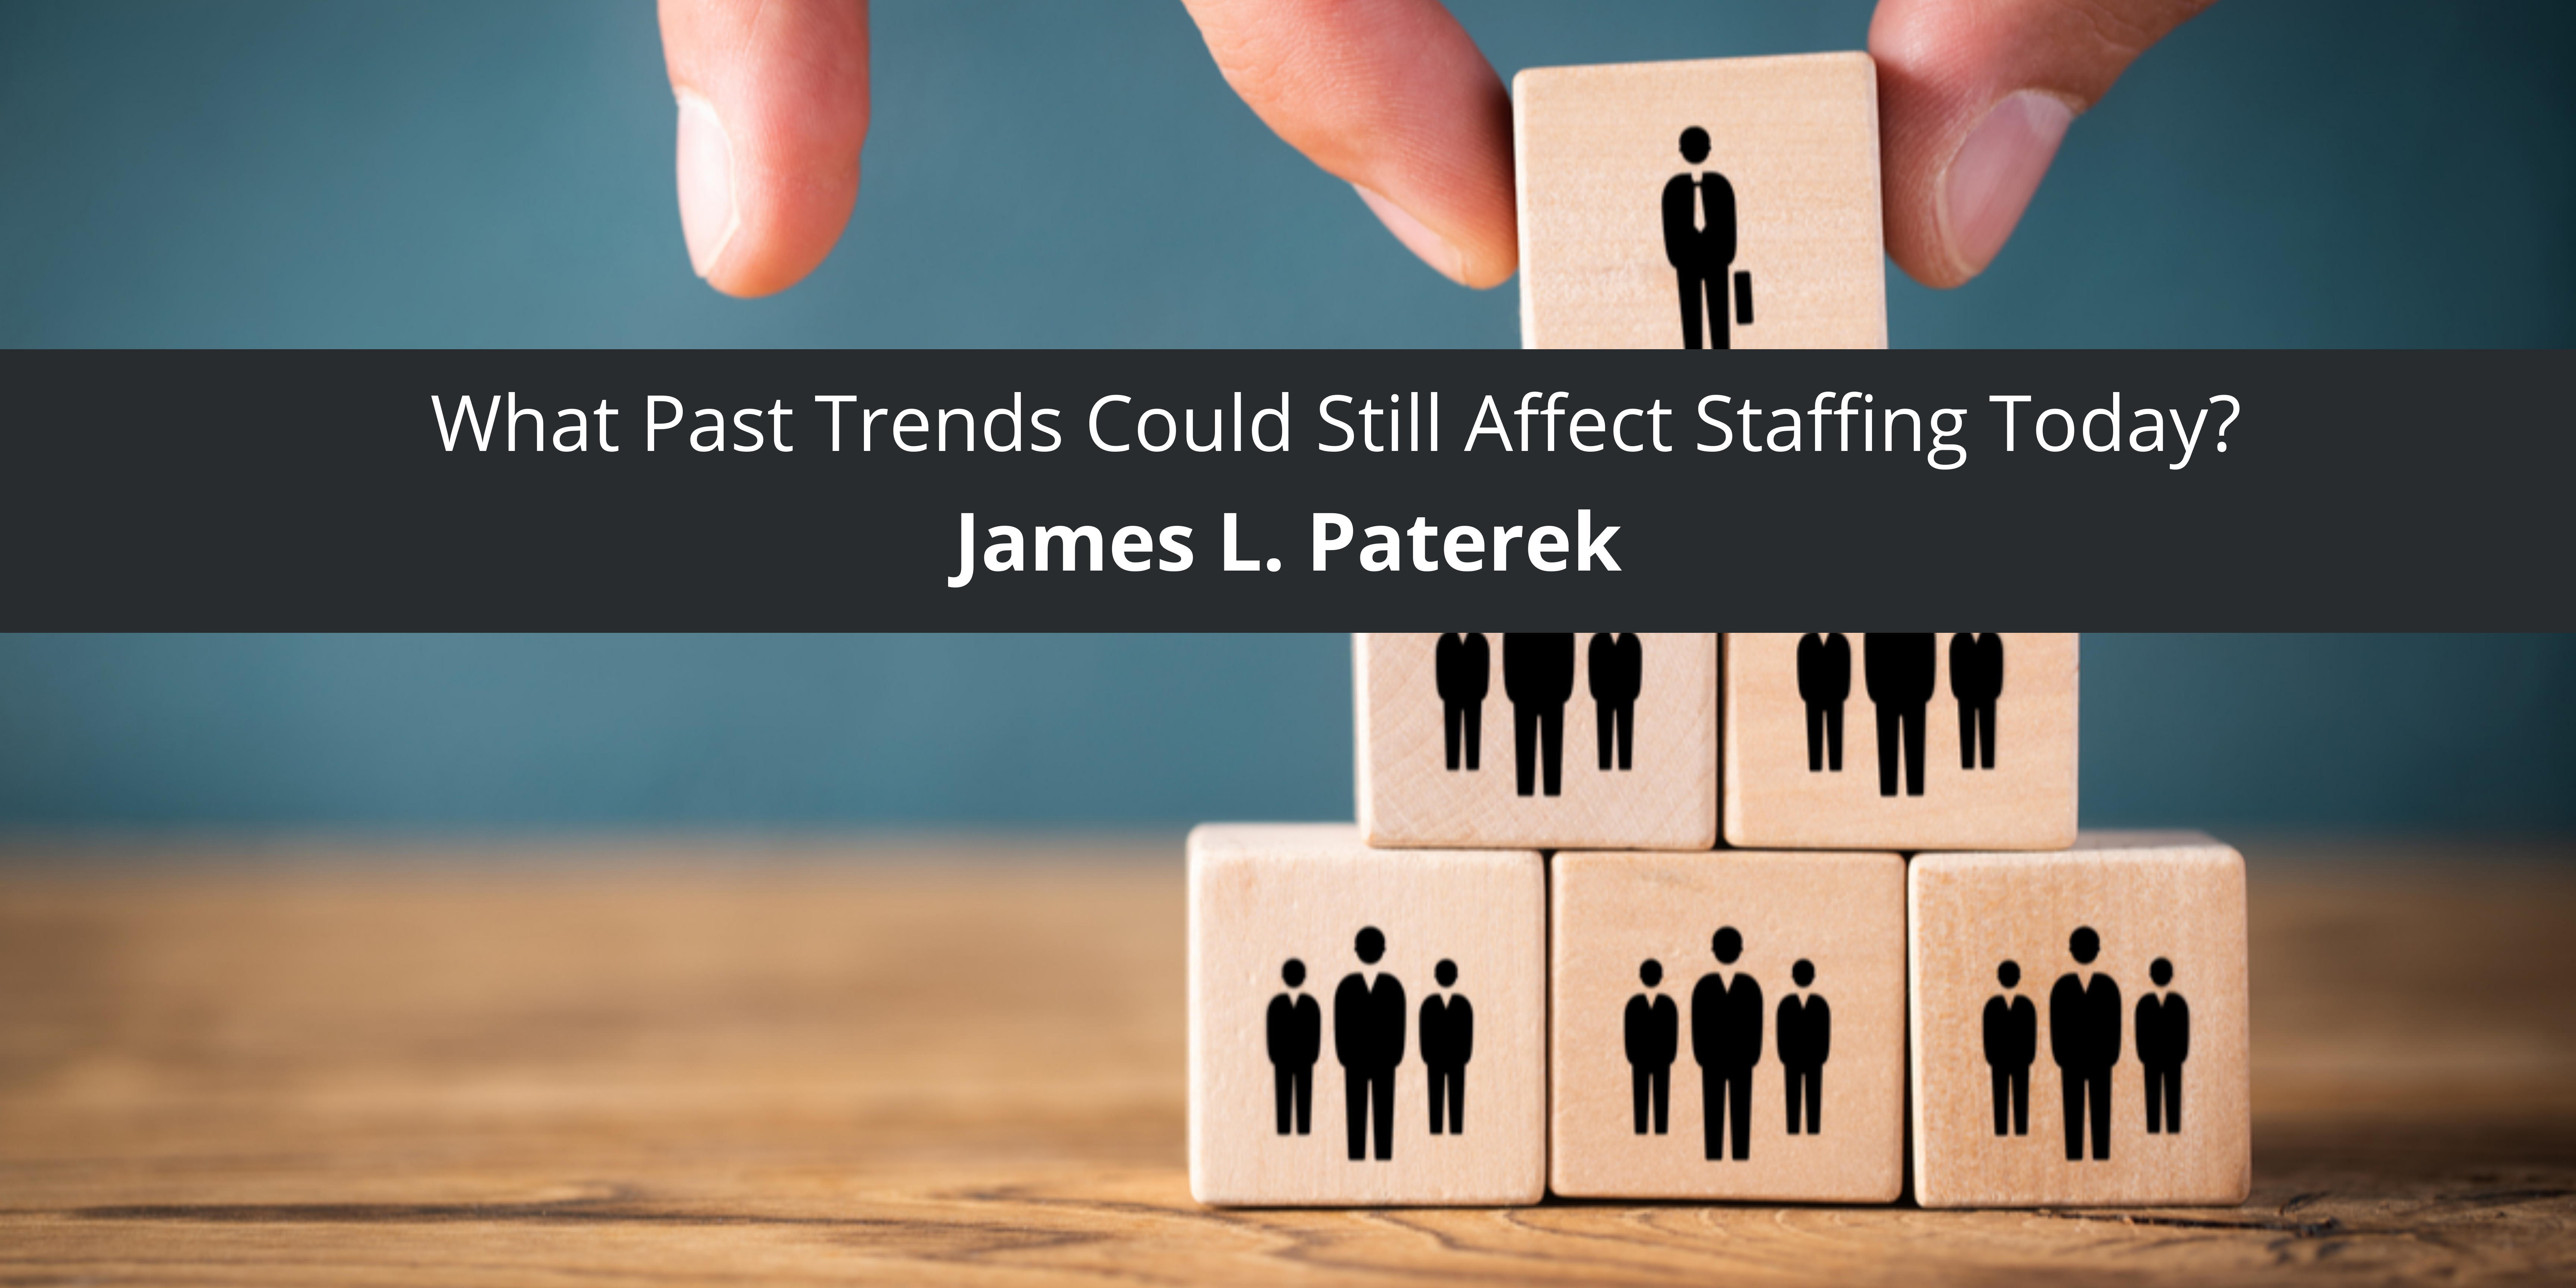 James Paterek: What Past Trends Could Still Affect Staffing Today?